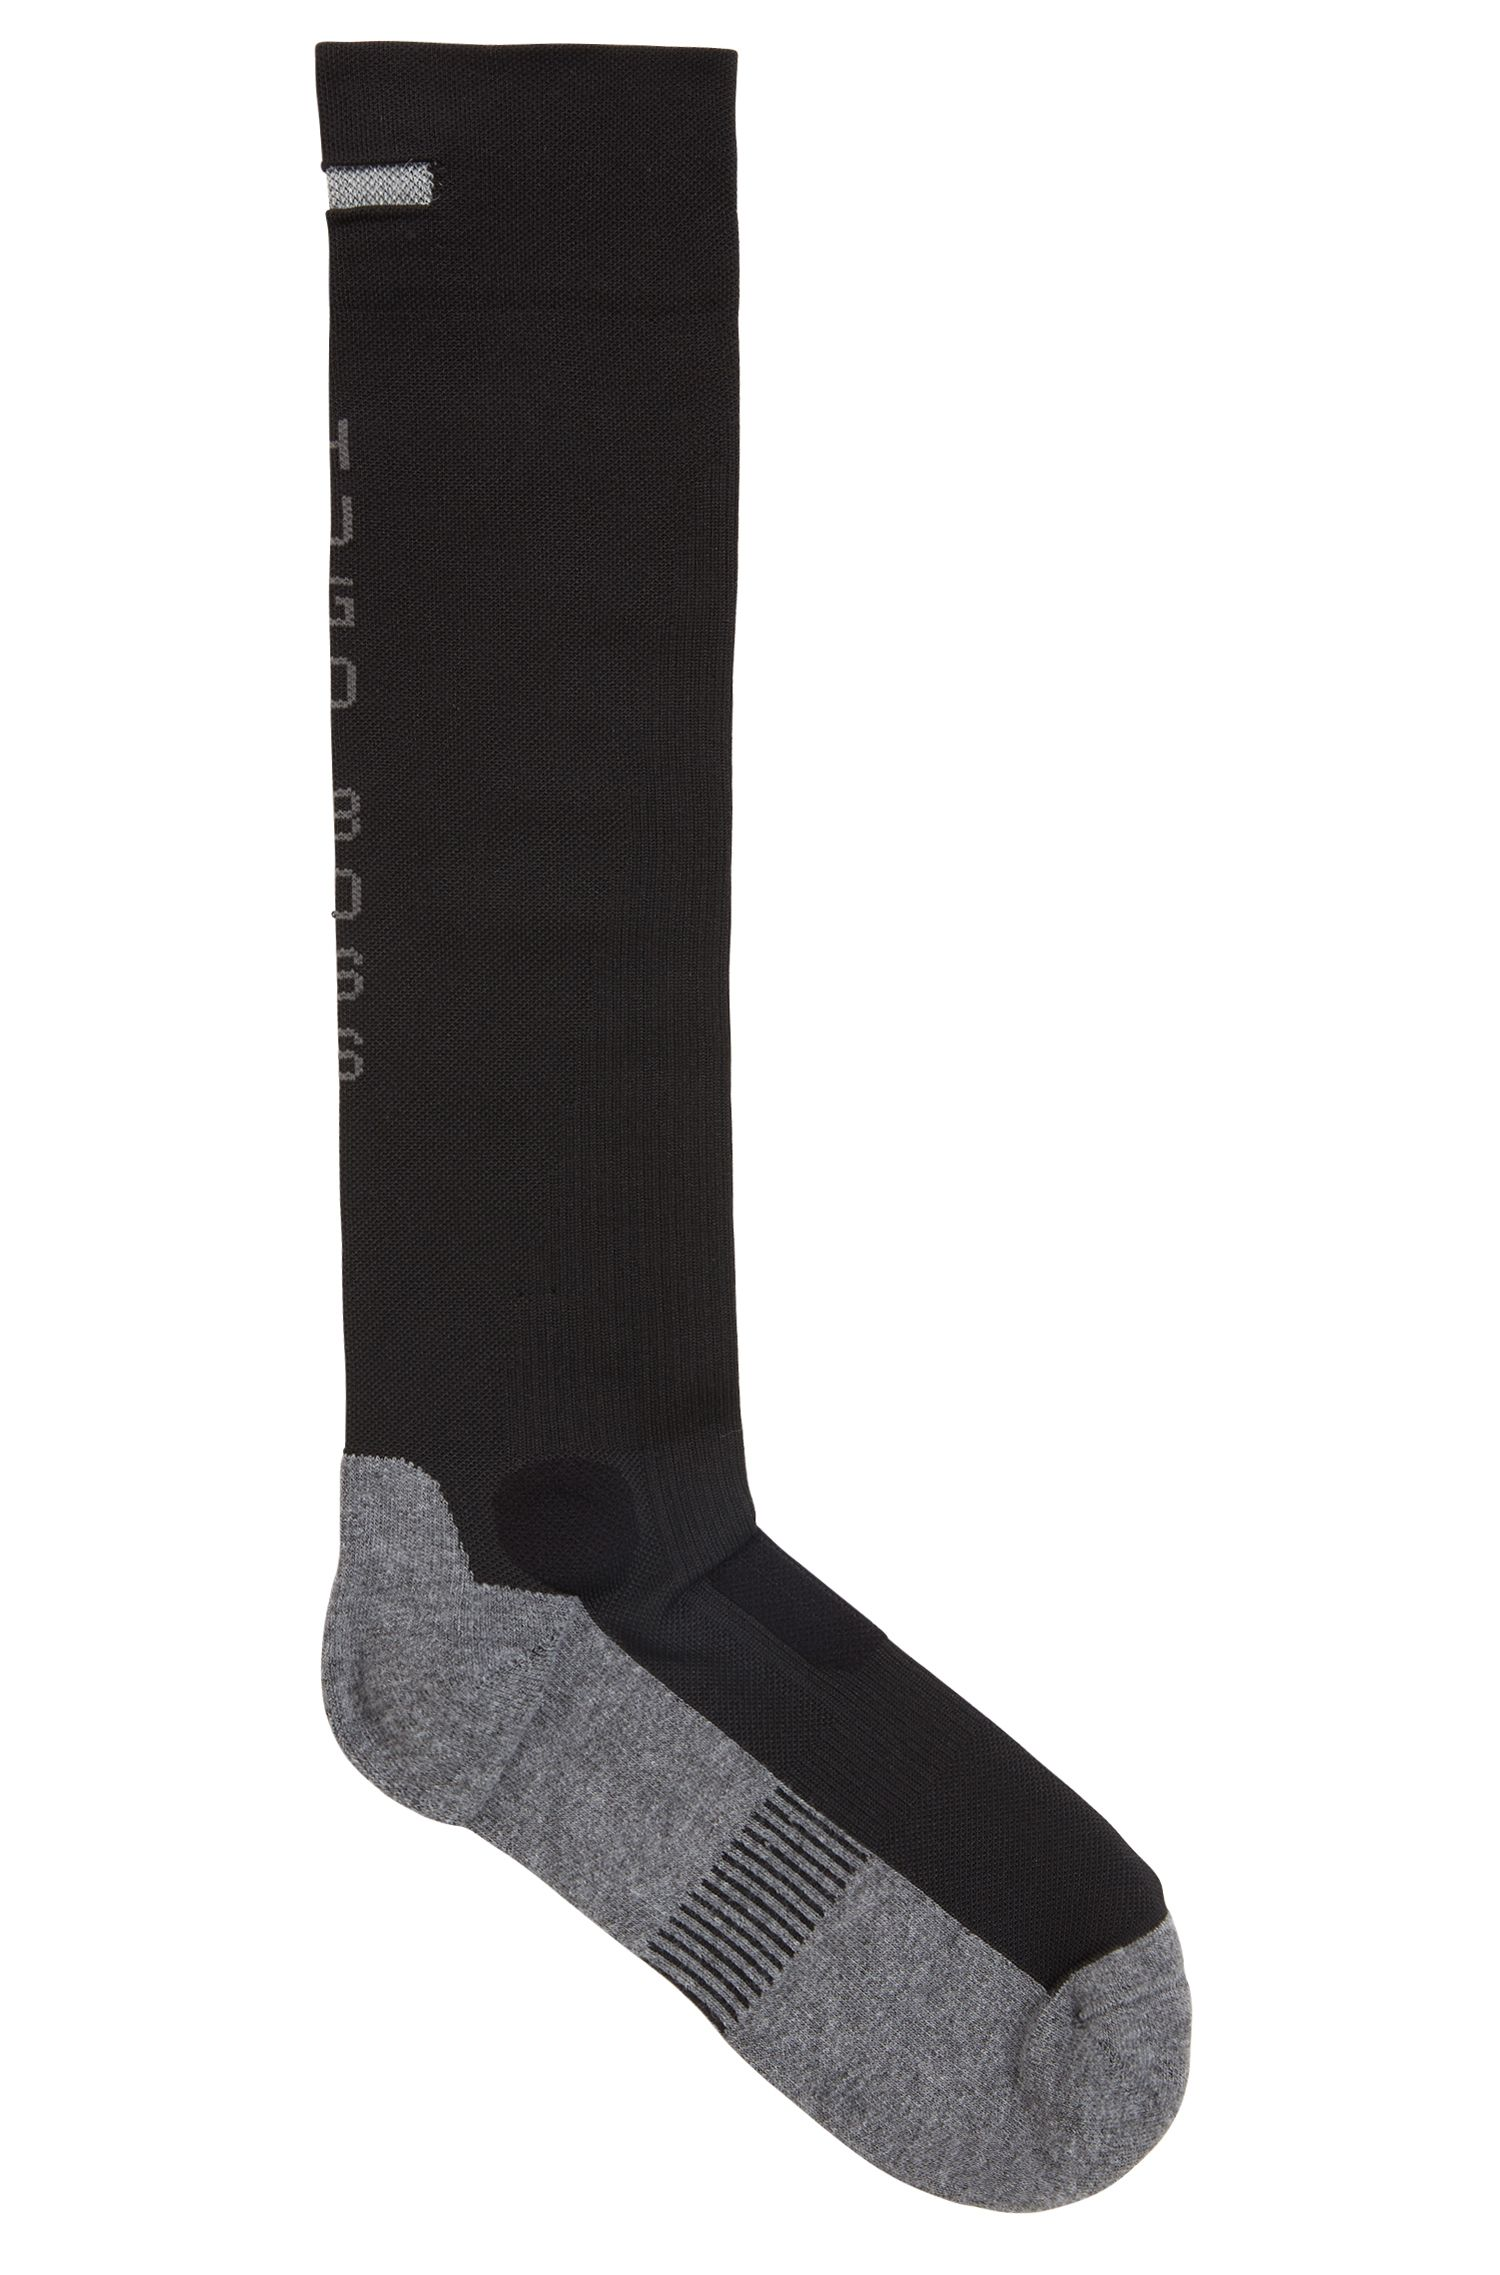 Knee-high socks in COOLMAX® fabric